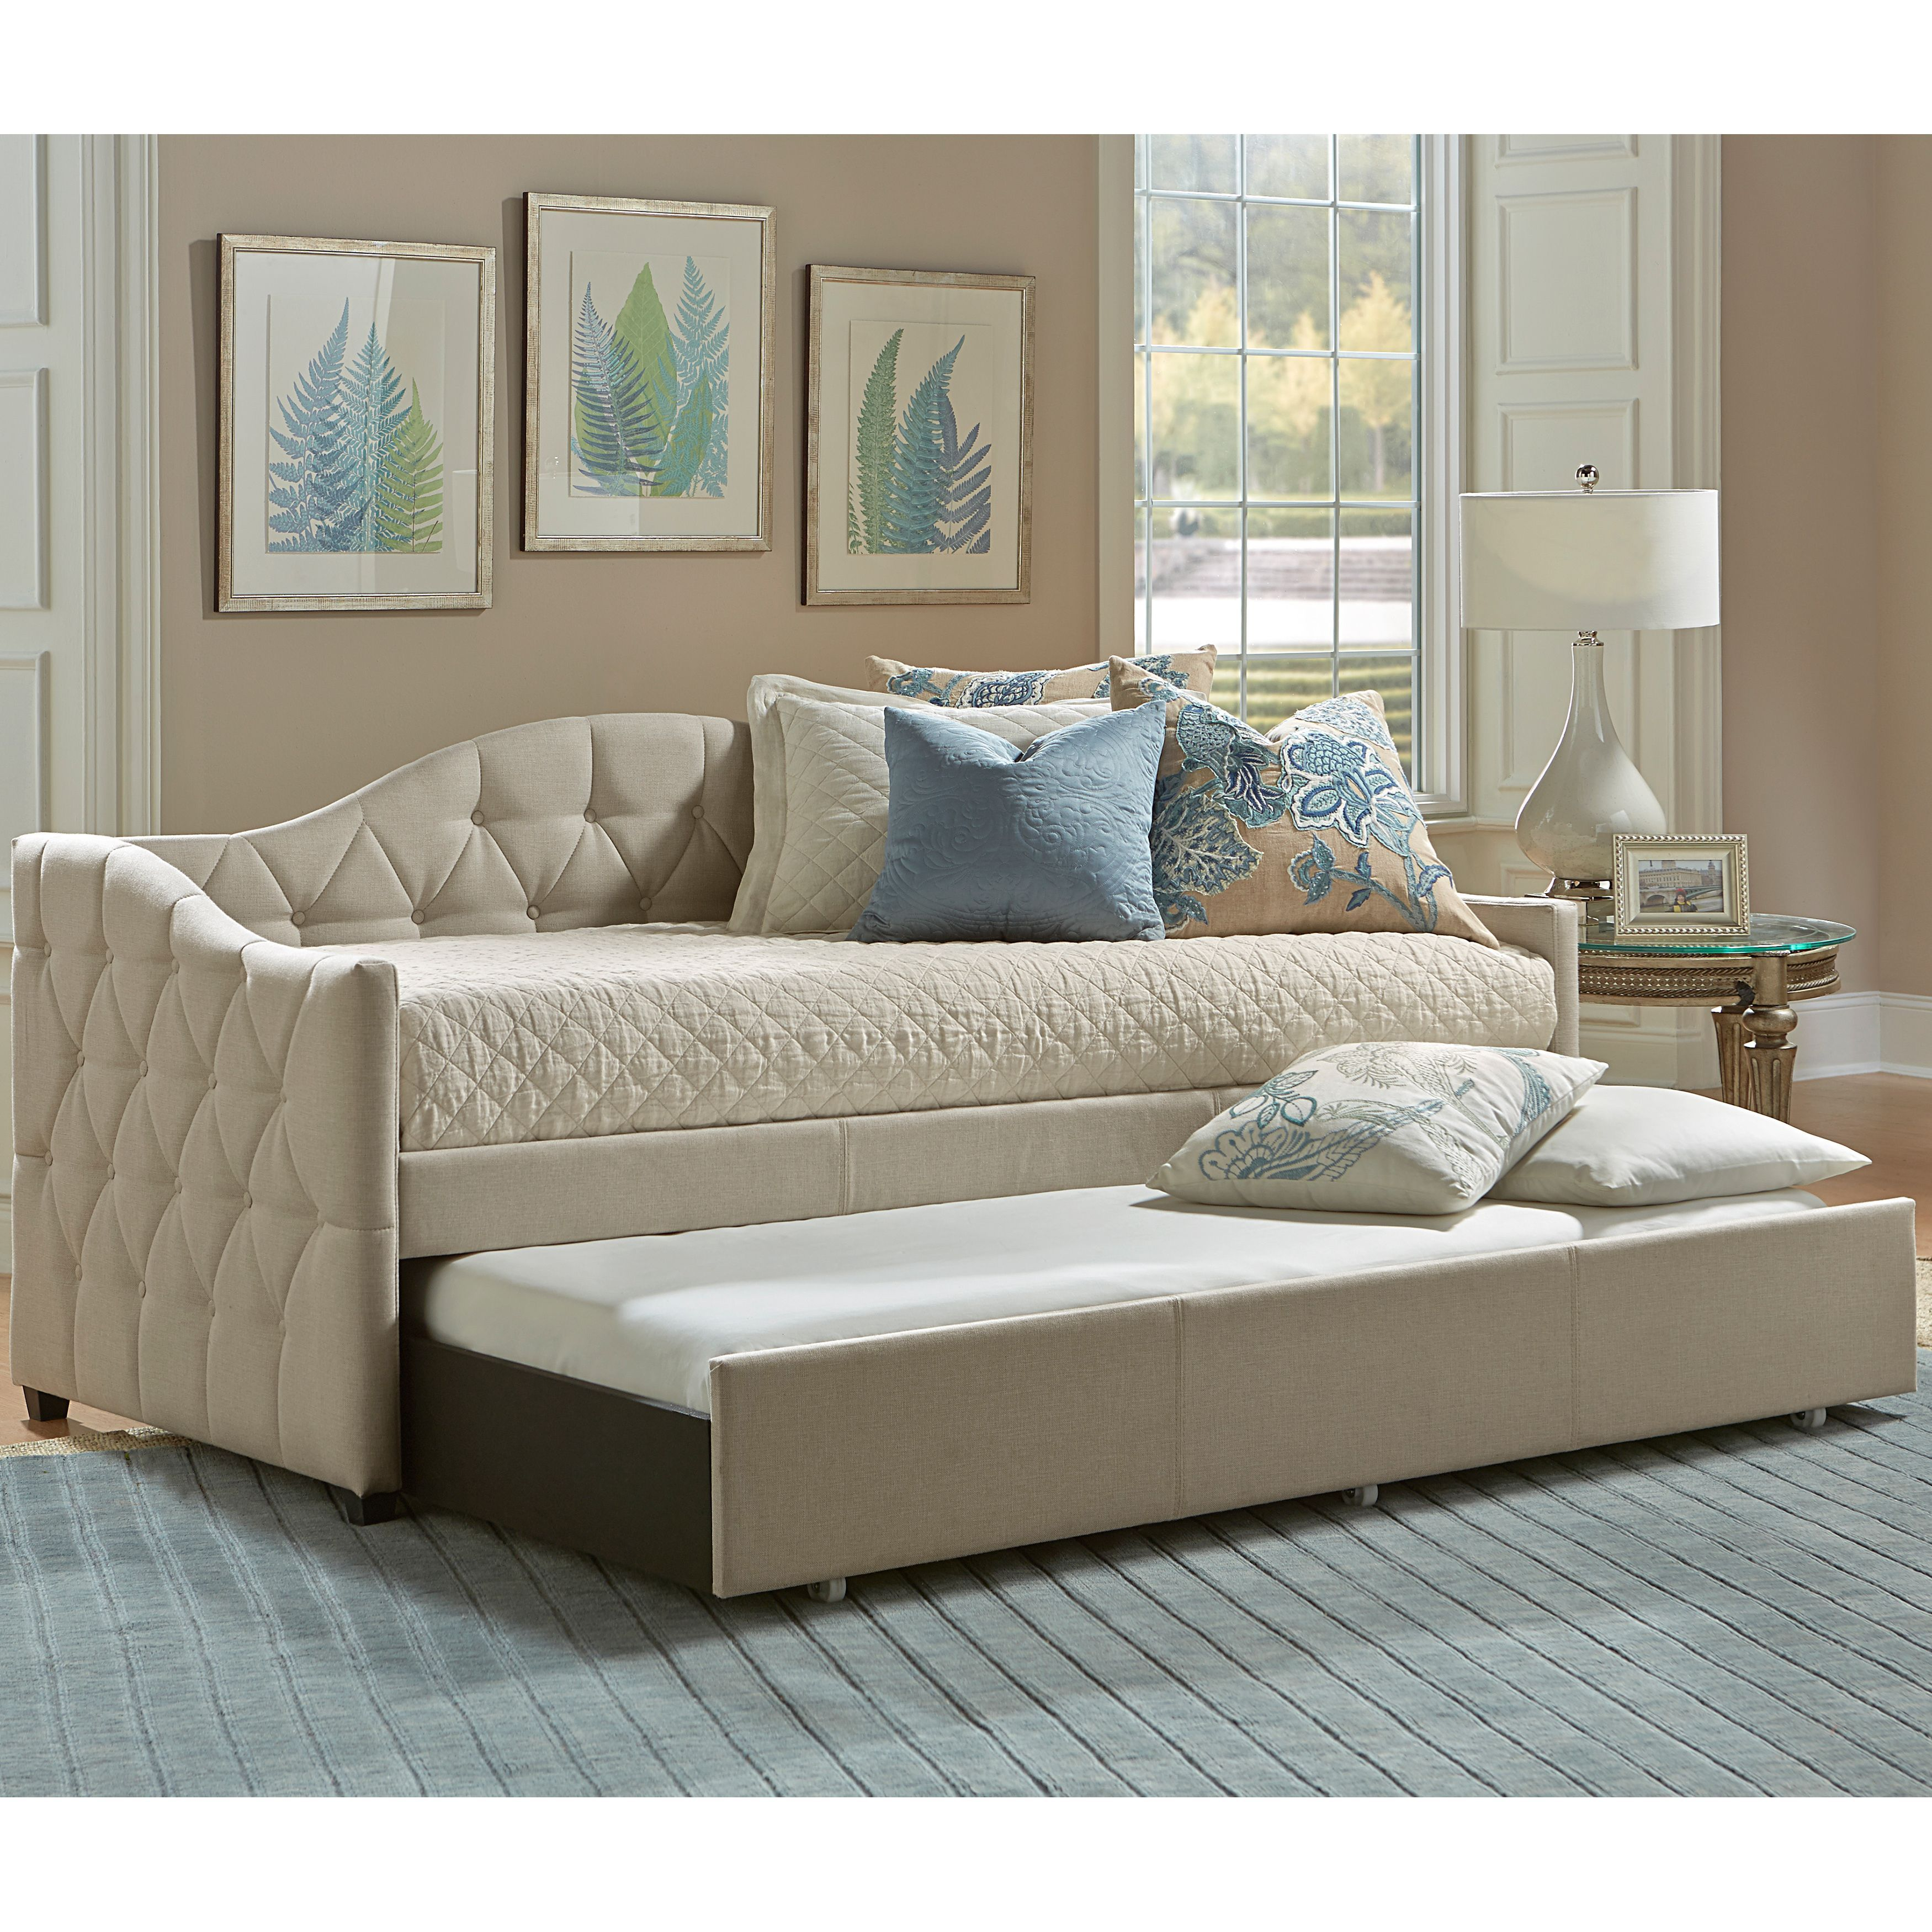 Best Jamie Beige Tufted Daybed With Trundle Overstock Com 640 x 480